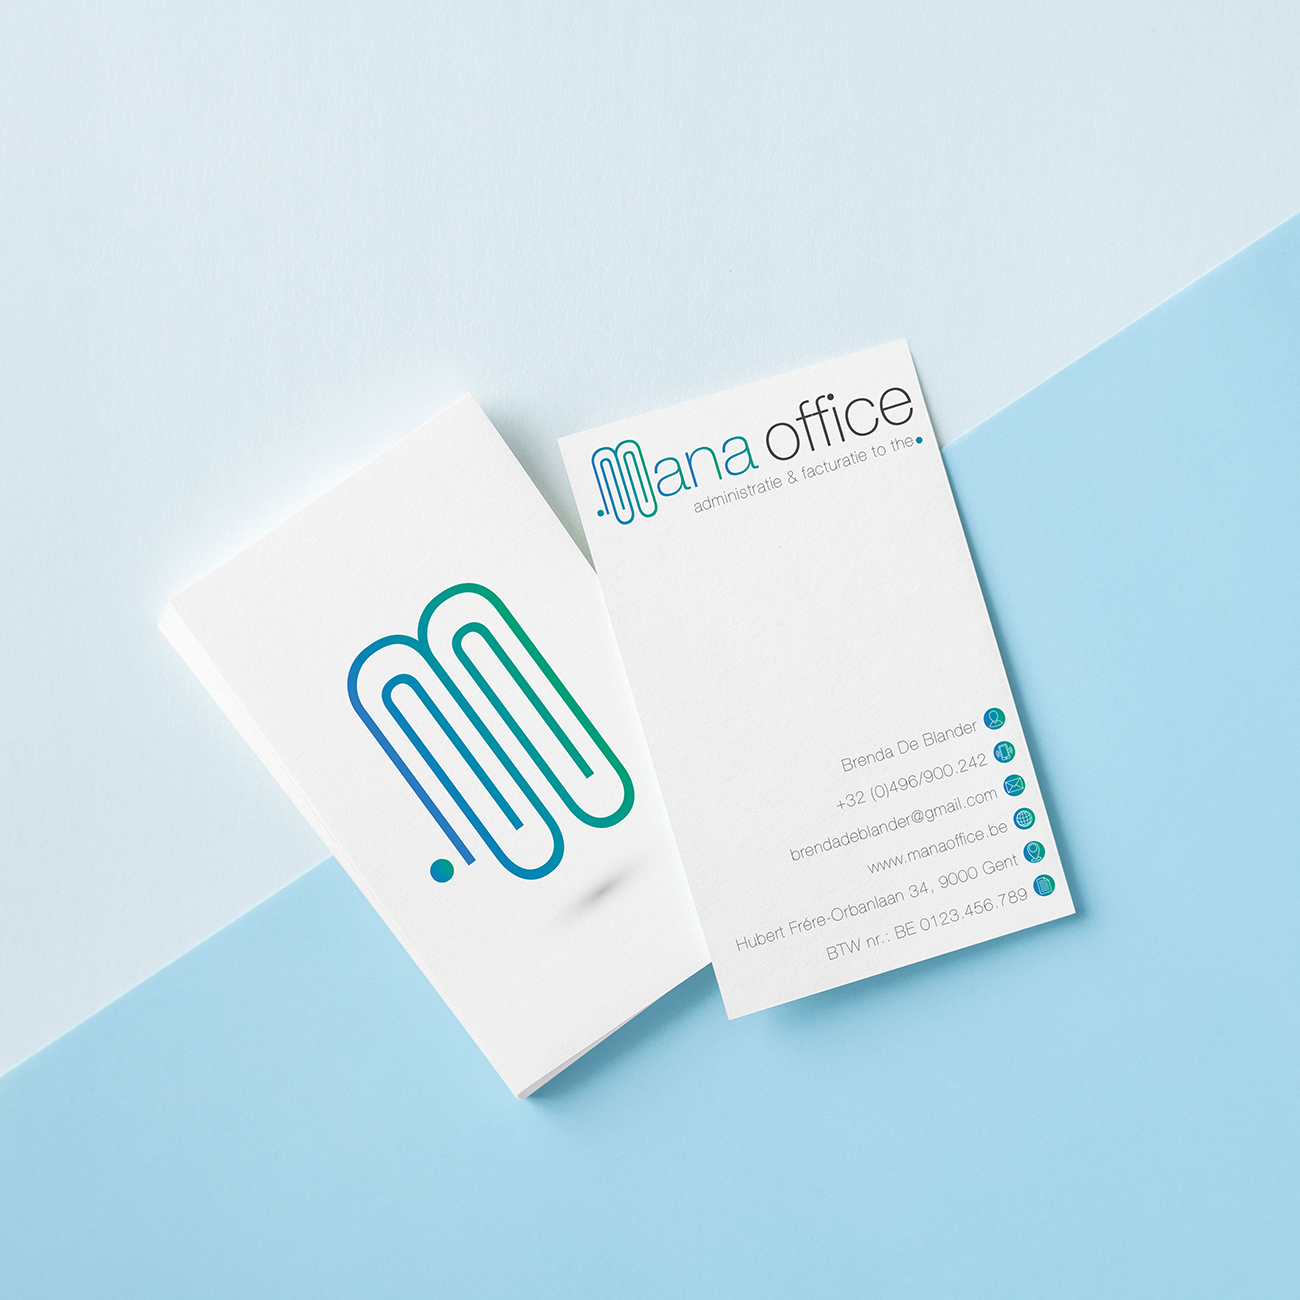 logo design manaoffice